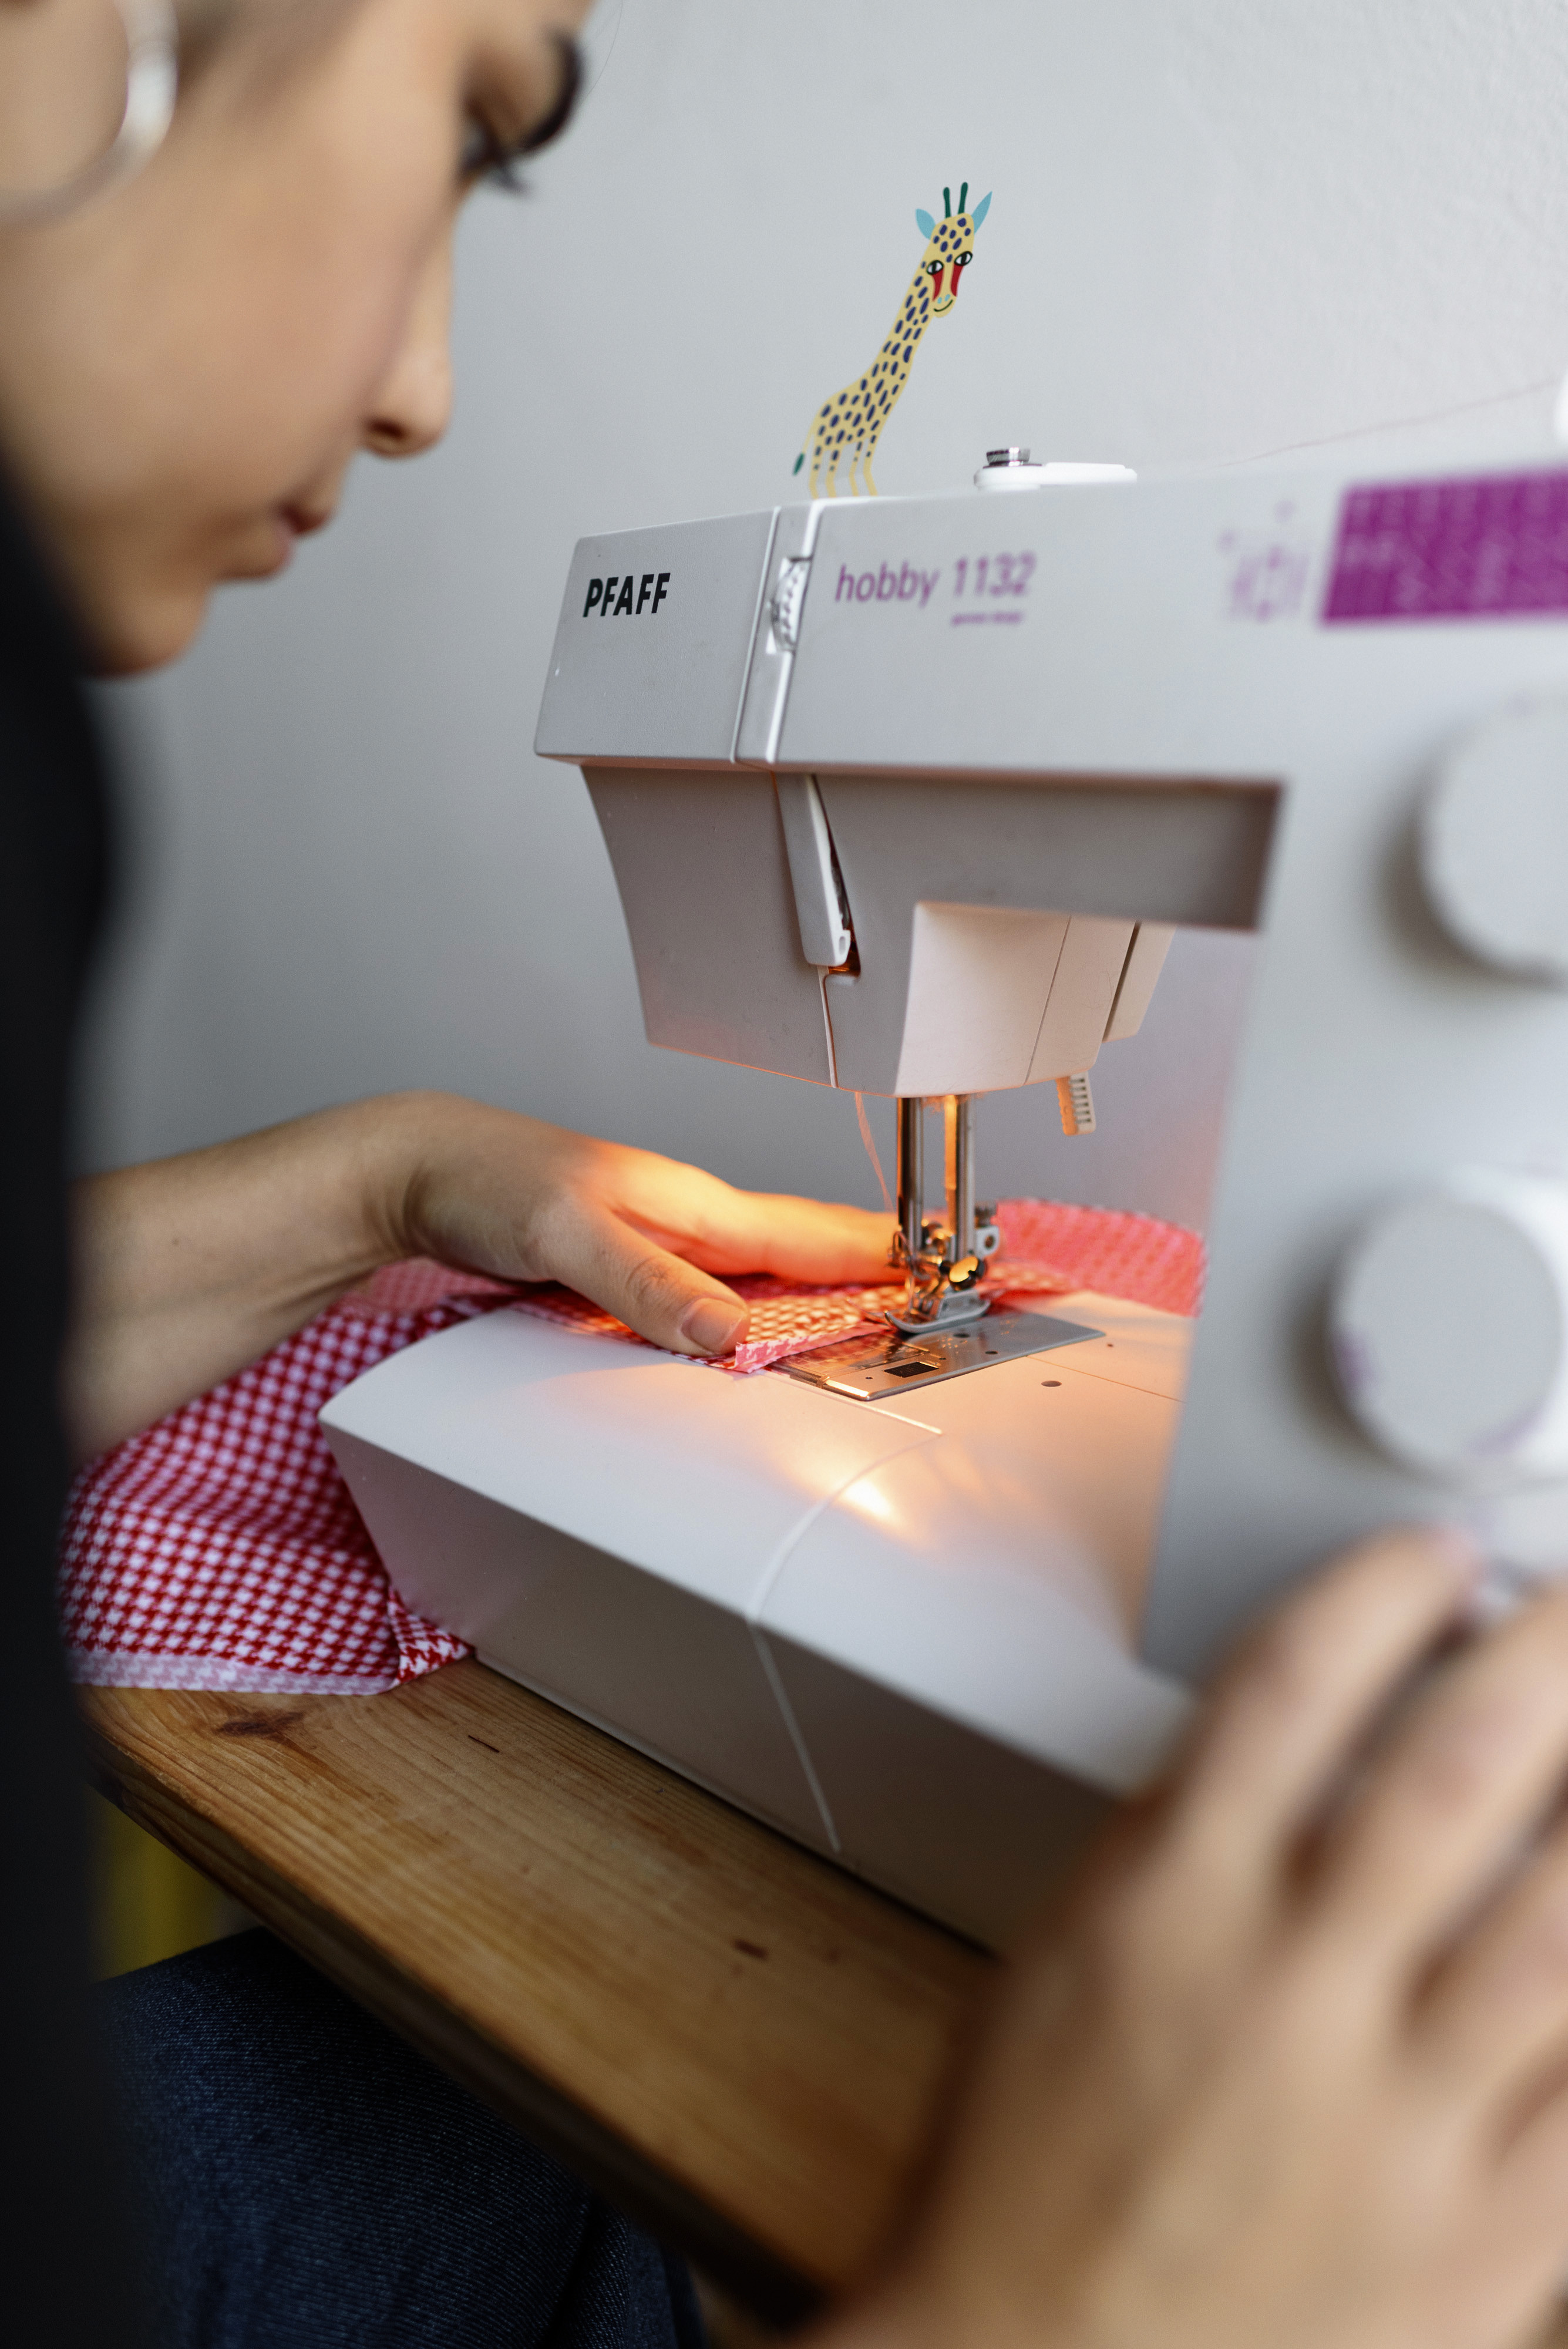 The Art of Sewing & Upcycling